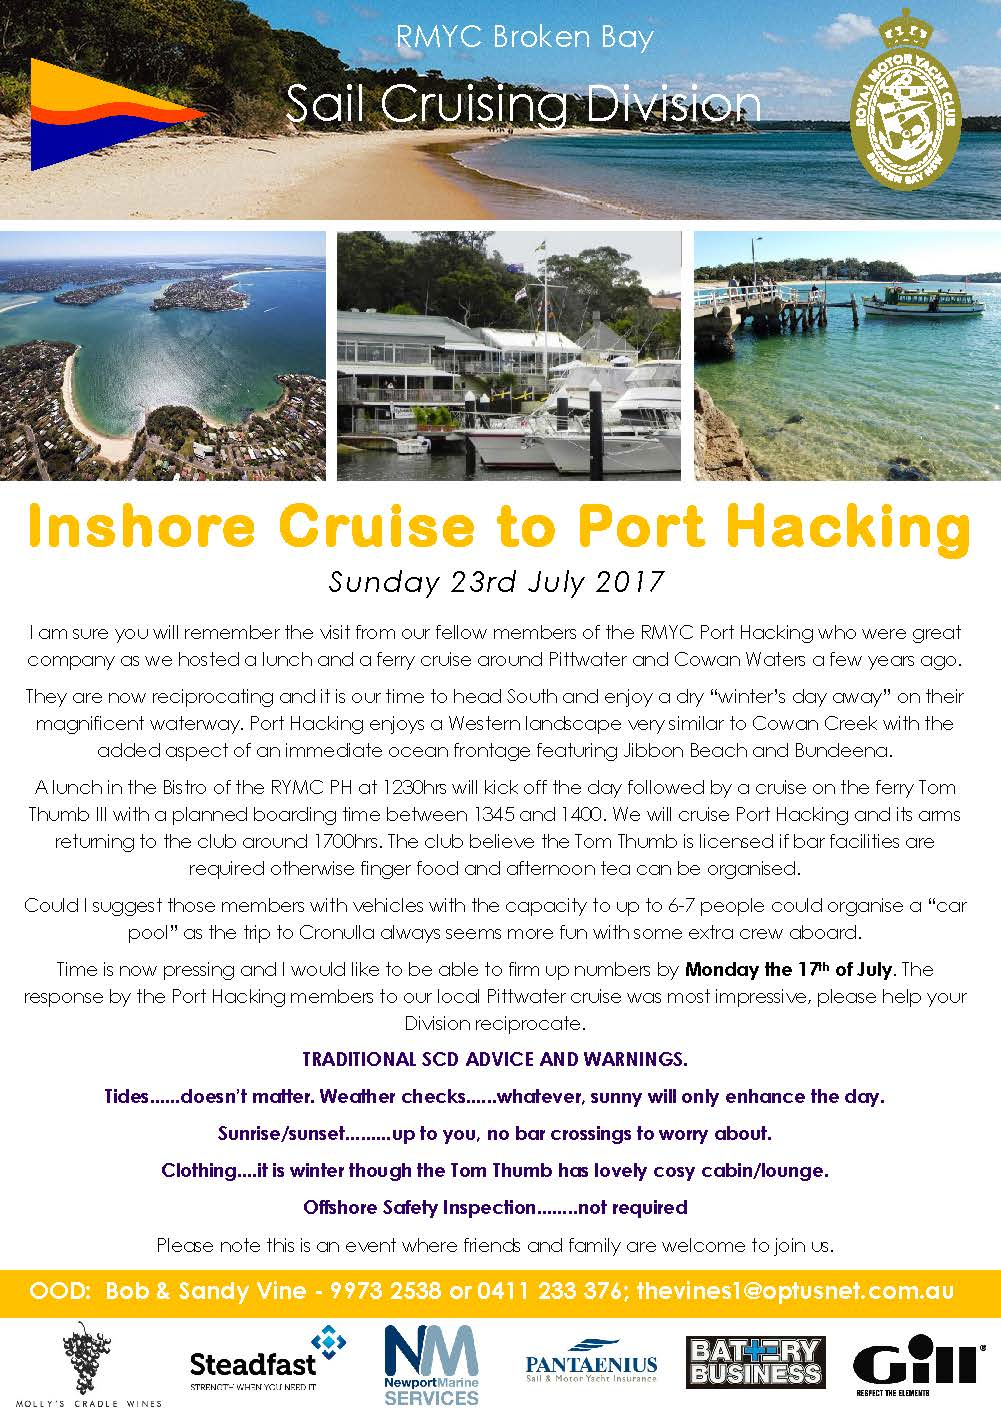 Inshore cruise to Port Hacking